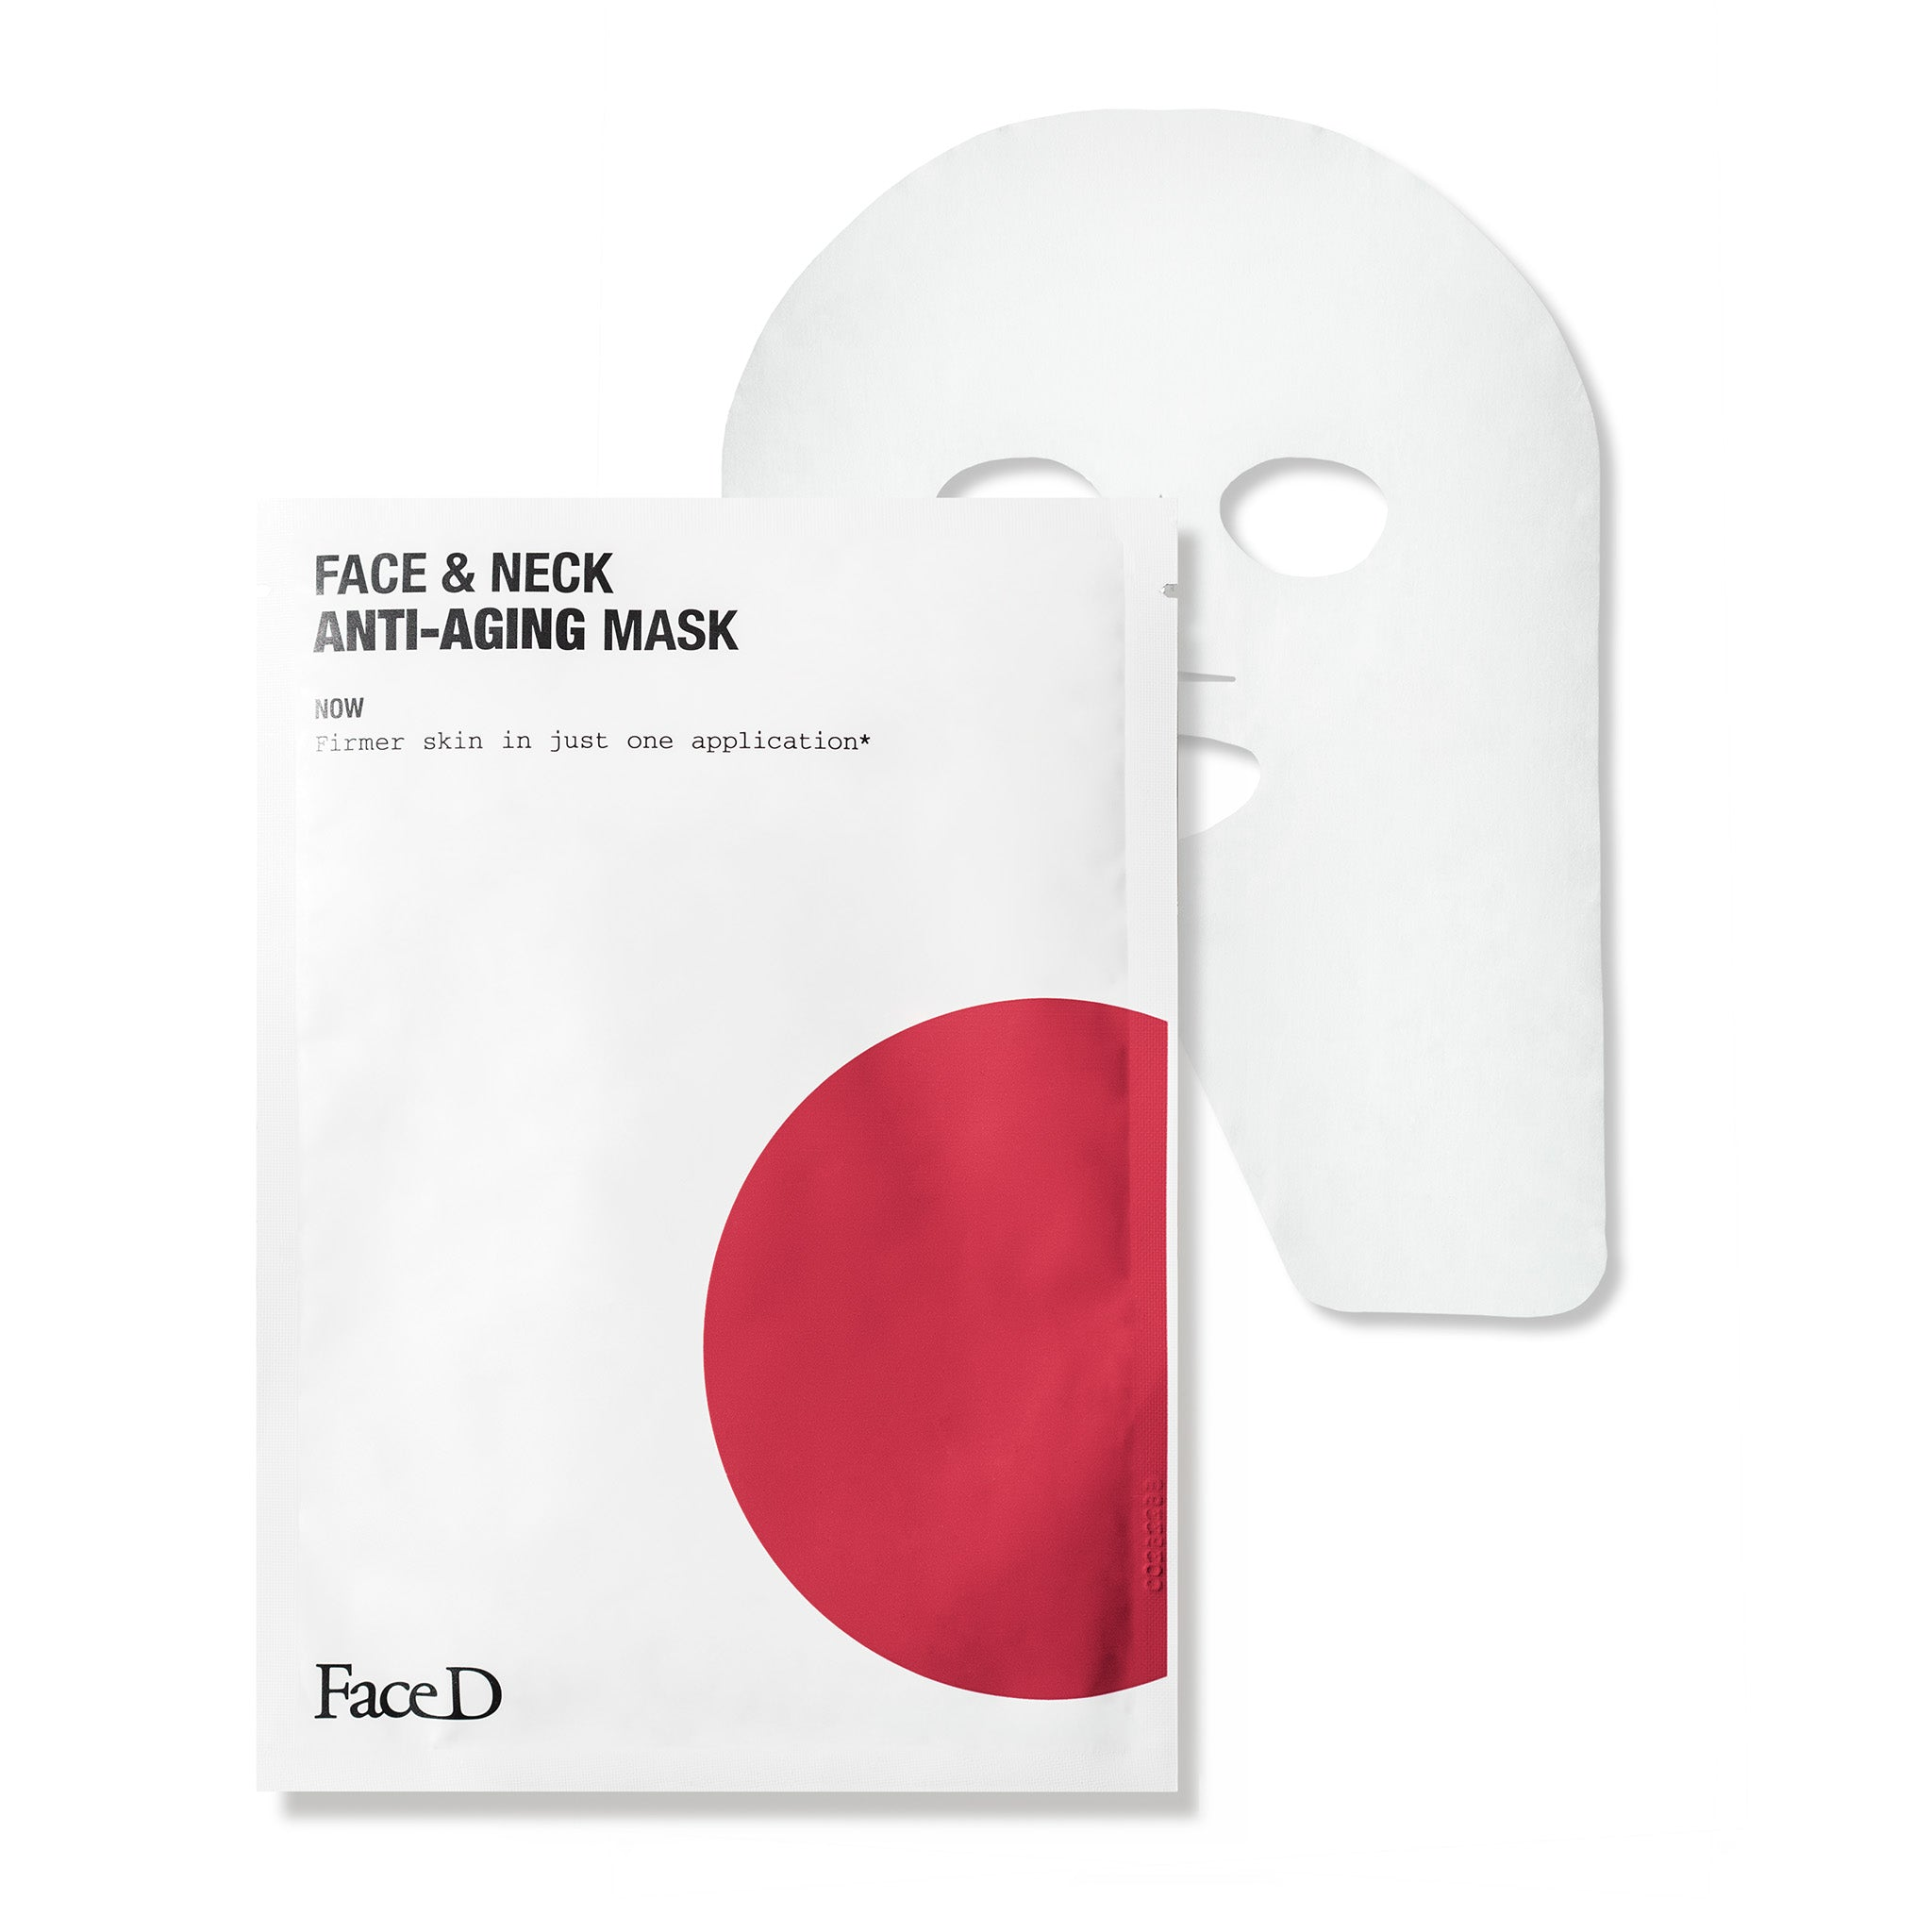 Anti-wrinkle-Face-Neck-Mask-FaceD-Anti-Ageing-Anti-Wrinkle